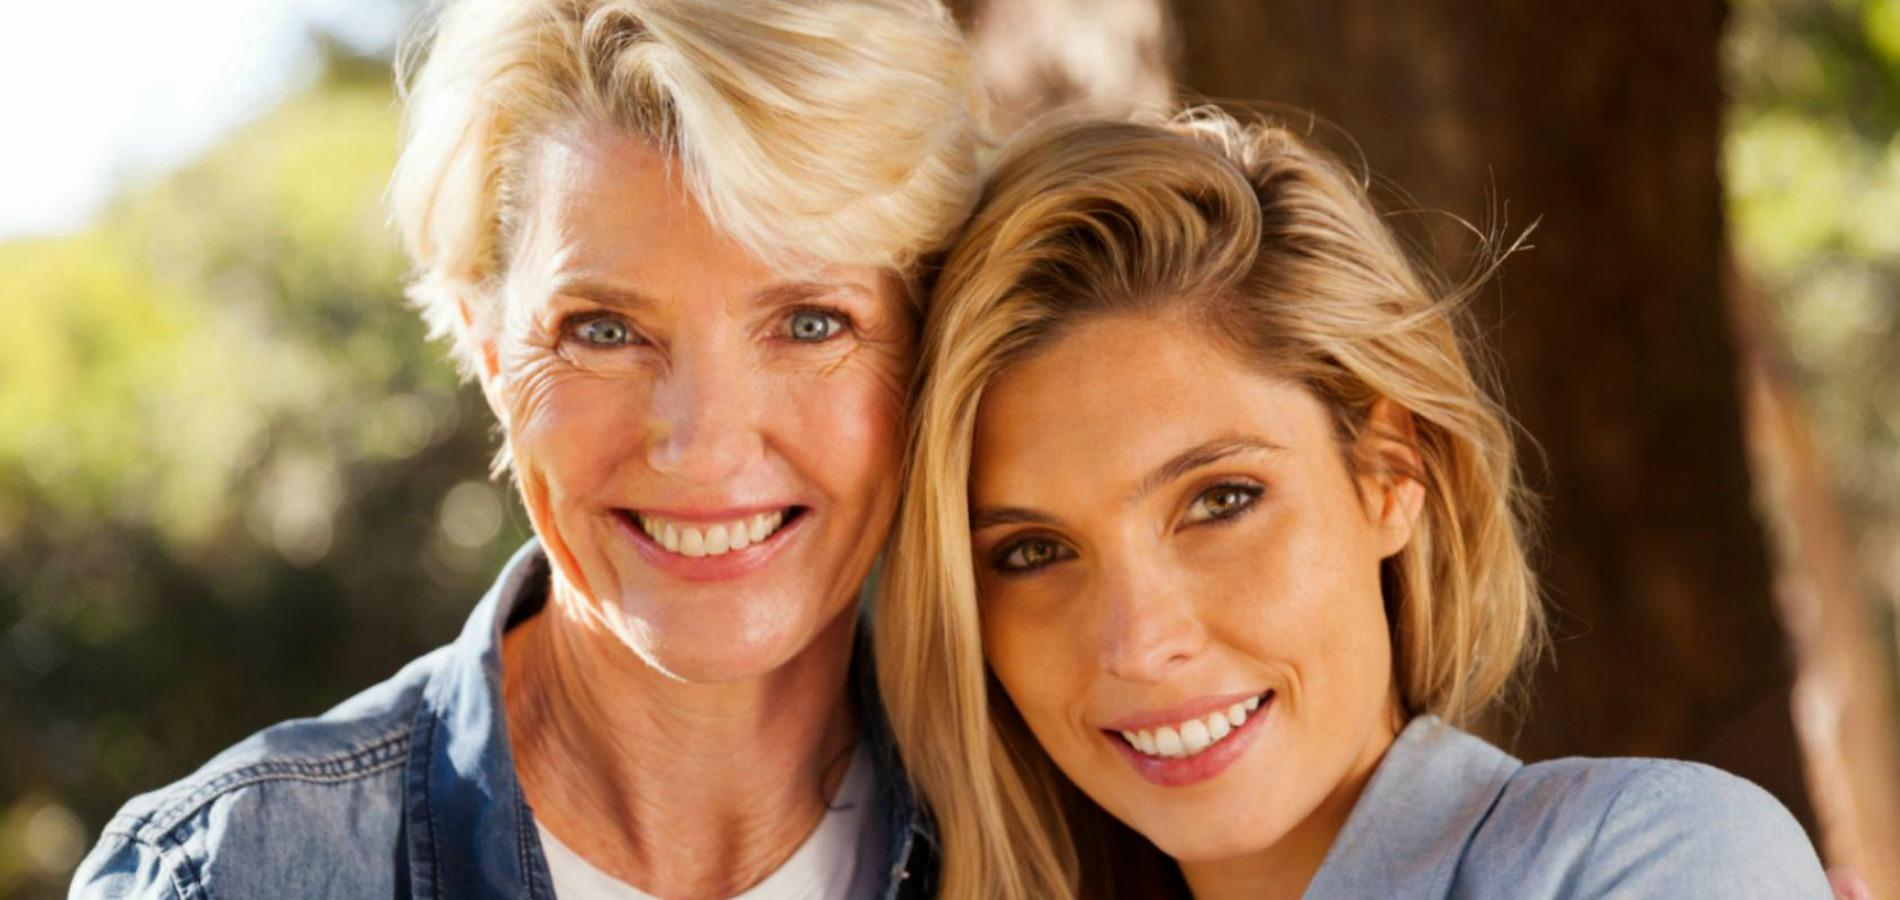 Request A Complimentary Matchmaking Consult